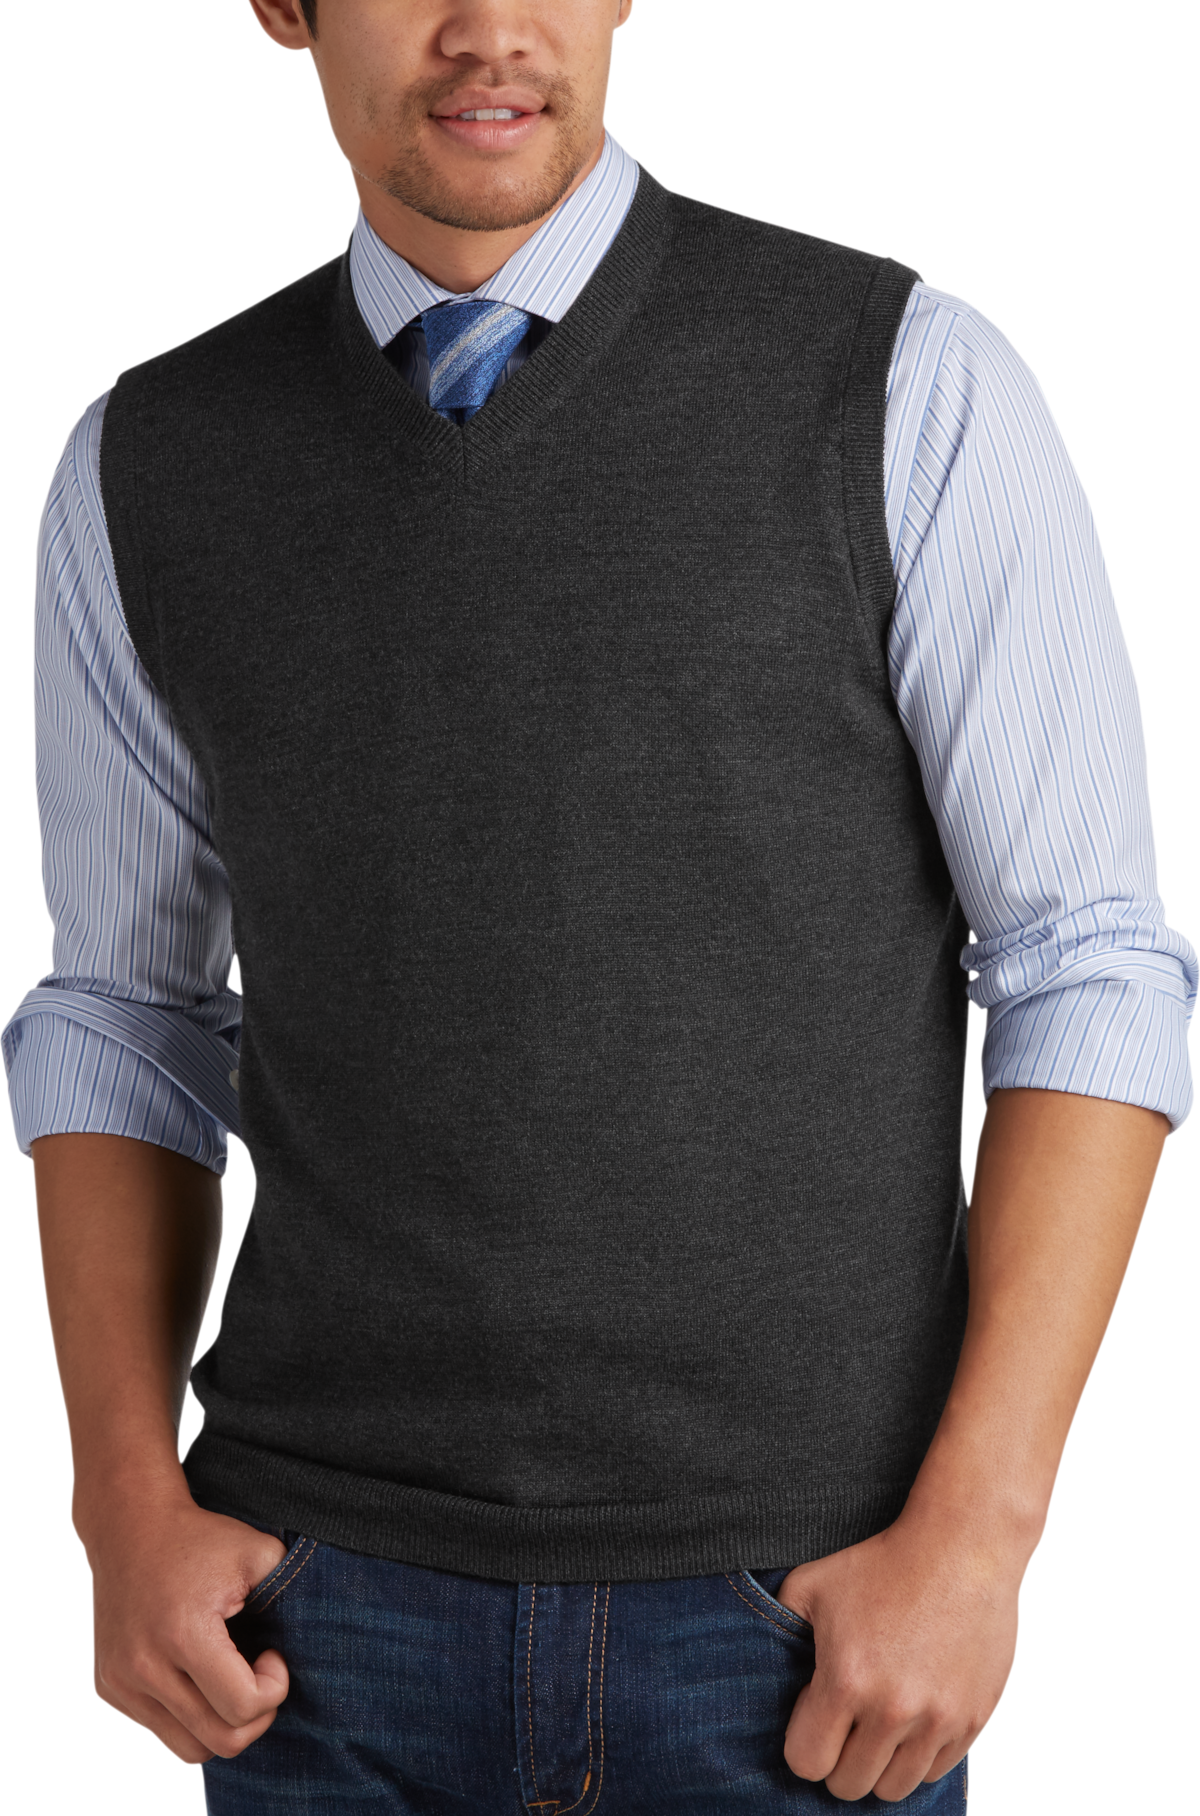 Big & Tall Sweater Vests - Men's Sweater Vests in XL | Men's Wearhouse